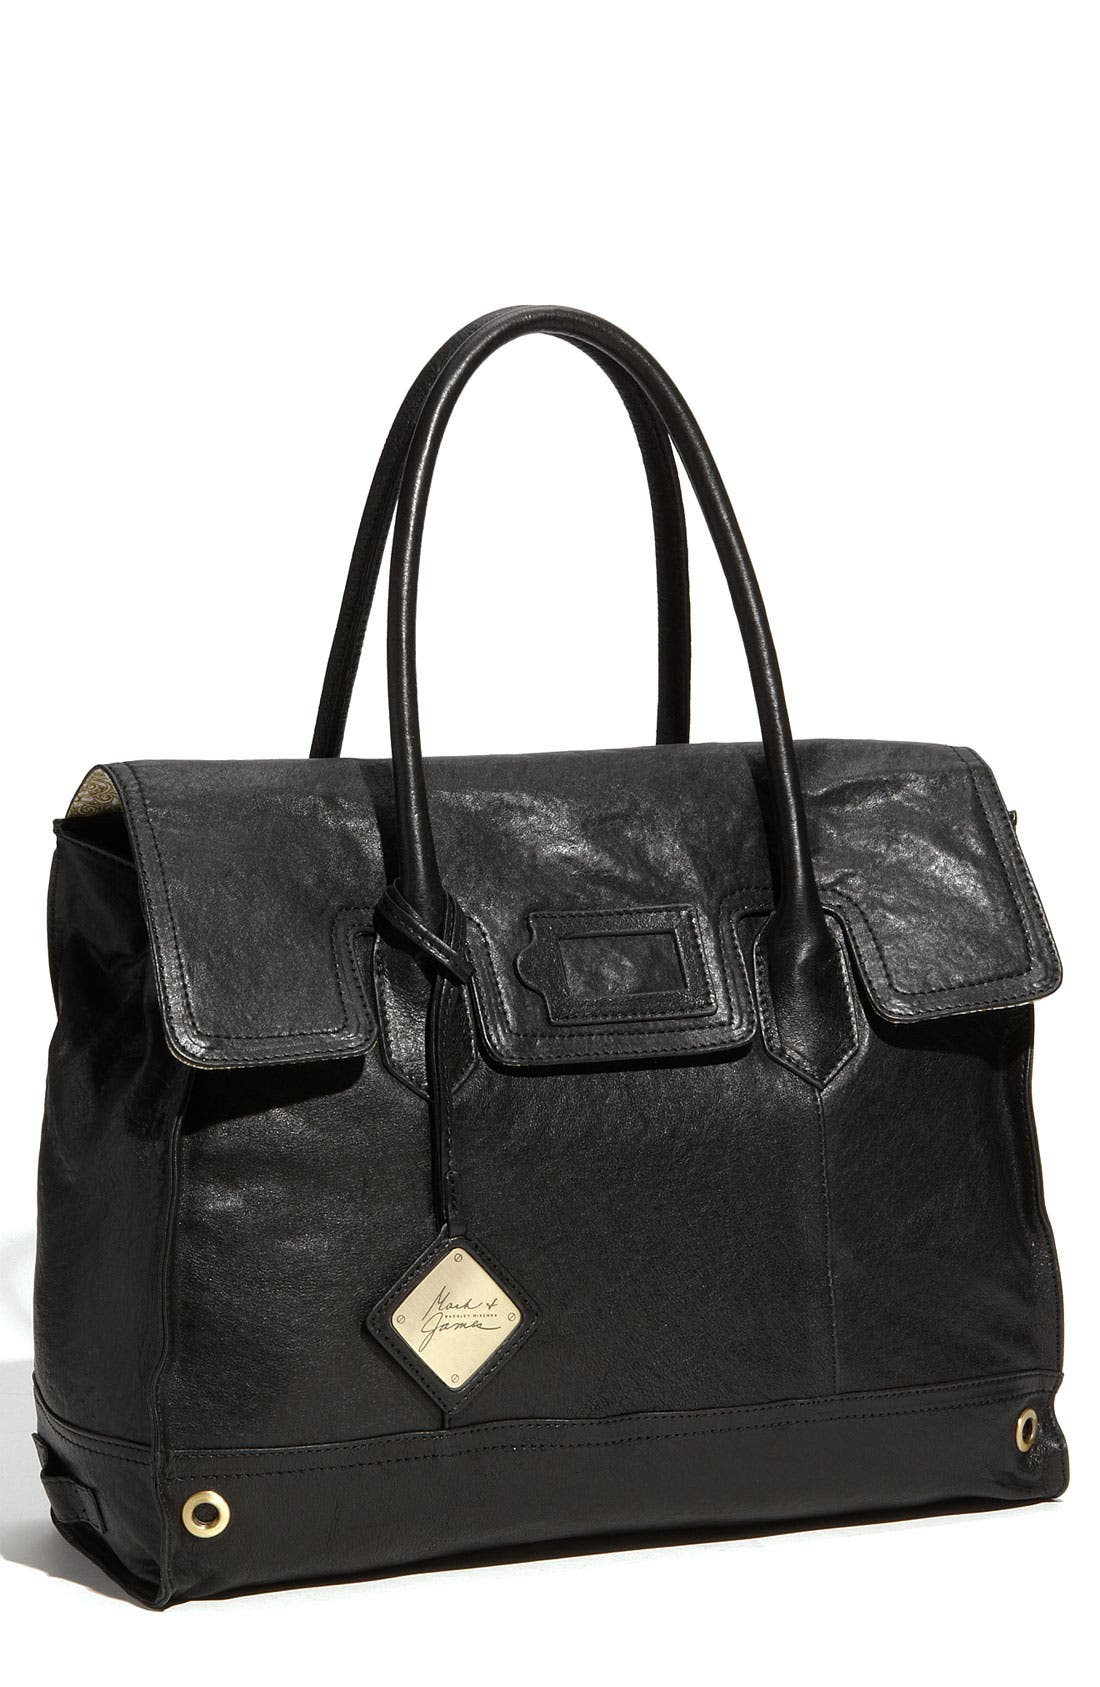 Main Image - Mark & James by Badgley Mischka 'Mina' Leather Tote